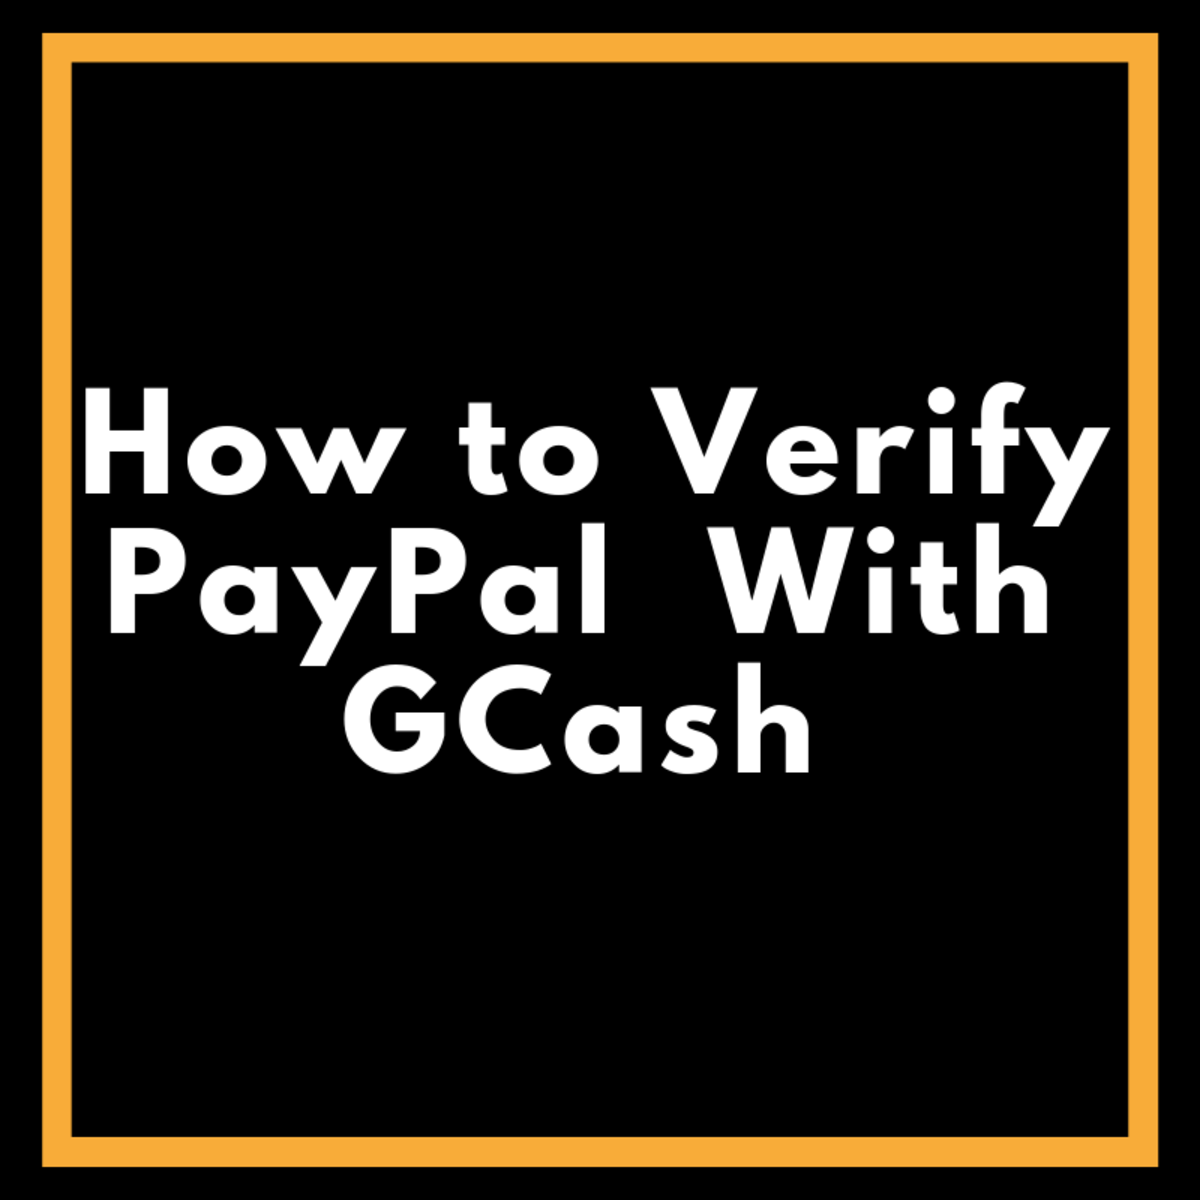 Verify your PayPal with GCash!